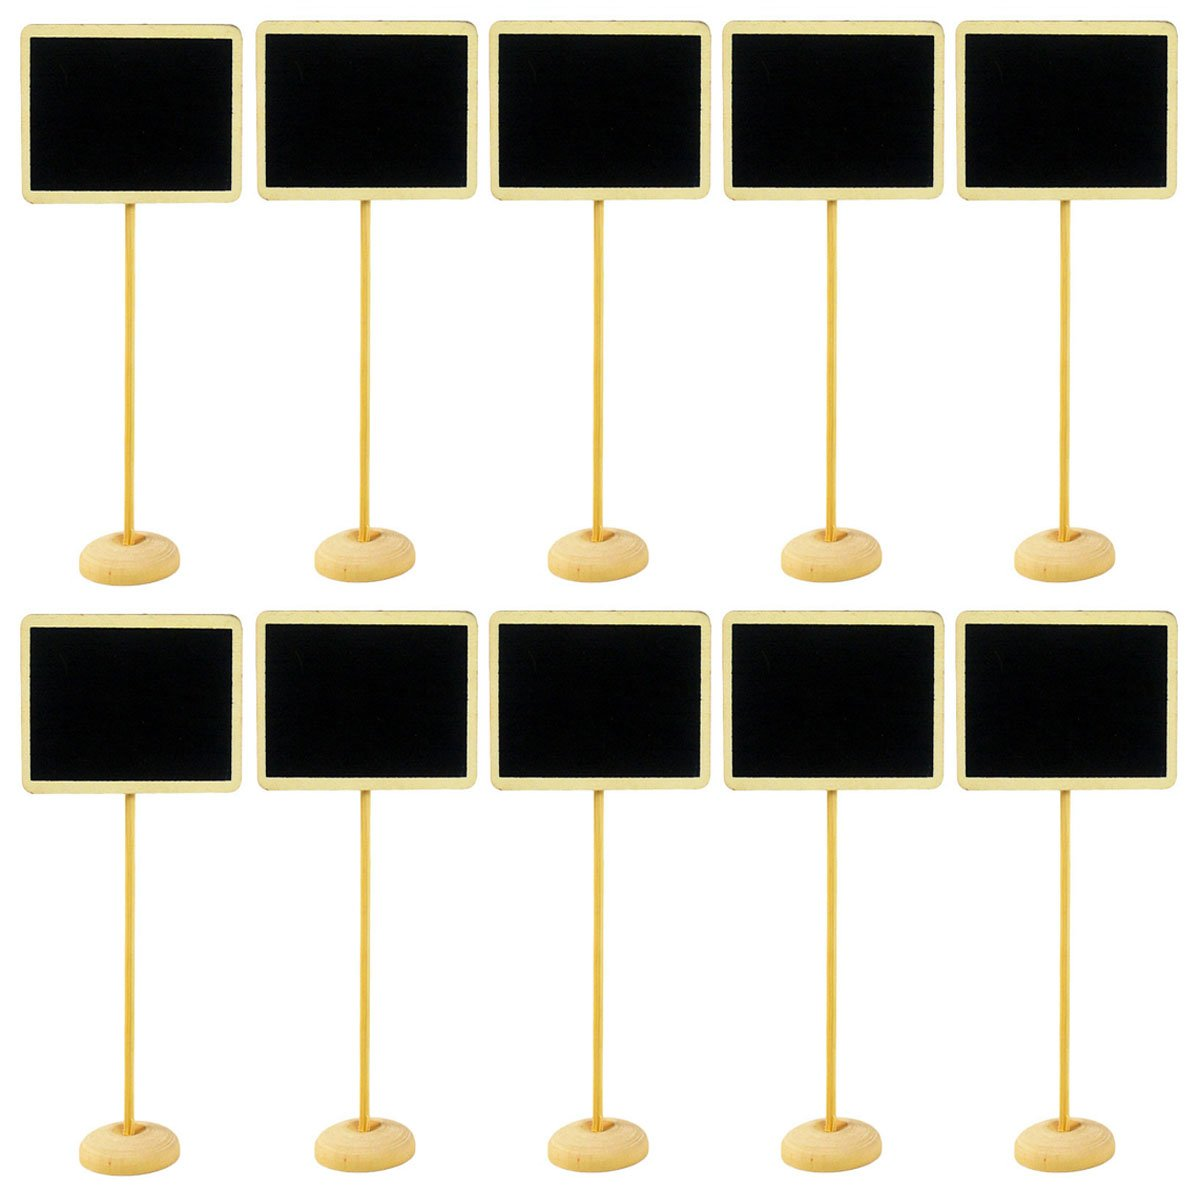 10 Pcs Wooden Mini Chalkboard Label with Stand - Mini Blackboard Message Board Signs Decorating Signs Table Number Price Tag for Wedding Party and Home Store Decor (Rectangle)